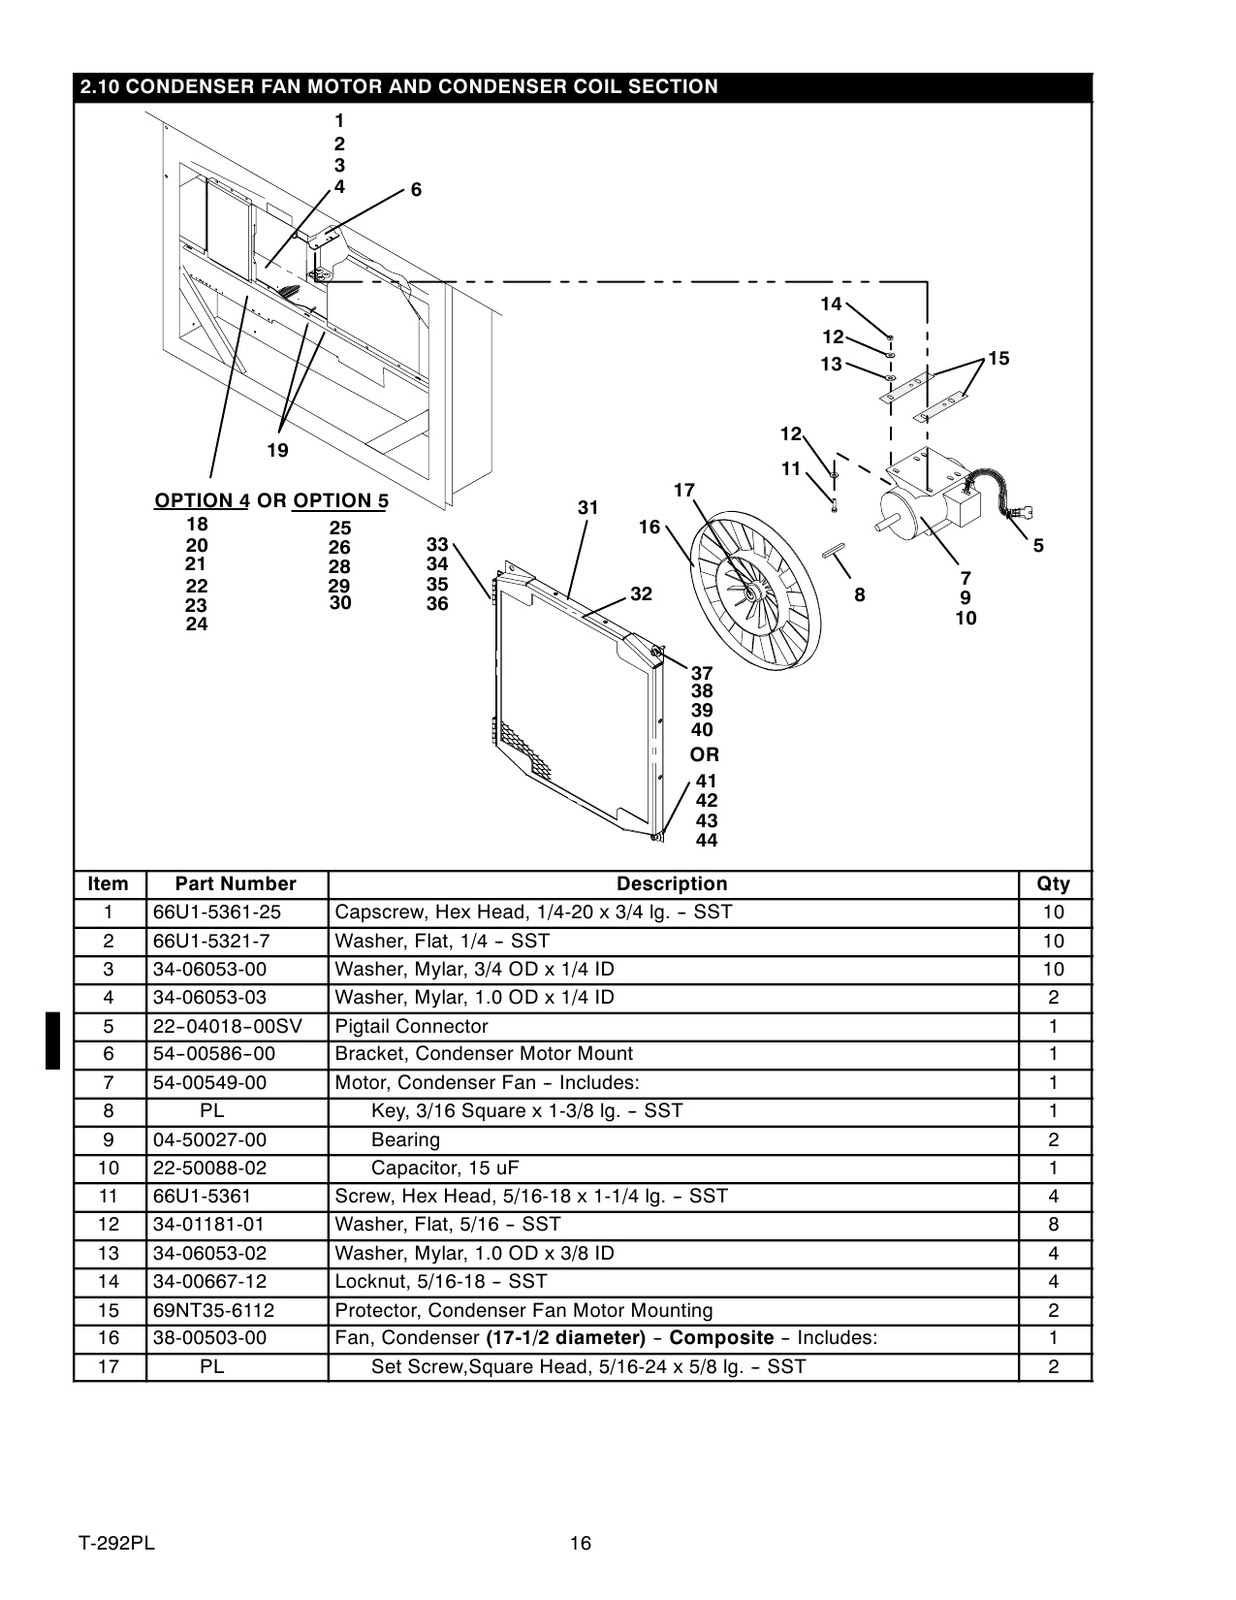 carrier 69nt40 scroll reefer michinery elephant chart for surveyor rh dhilreefer blogspot com Dry Container Reefer Container Interior